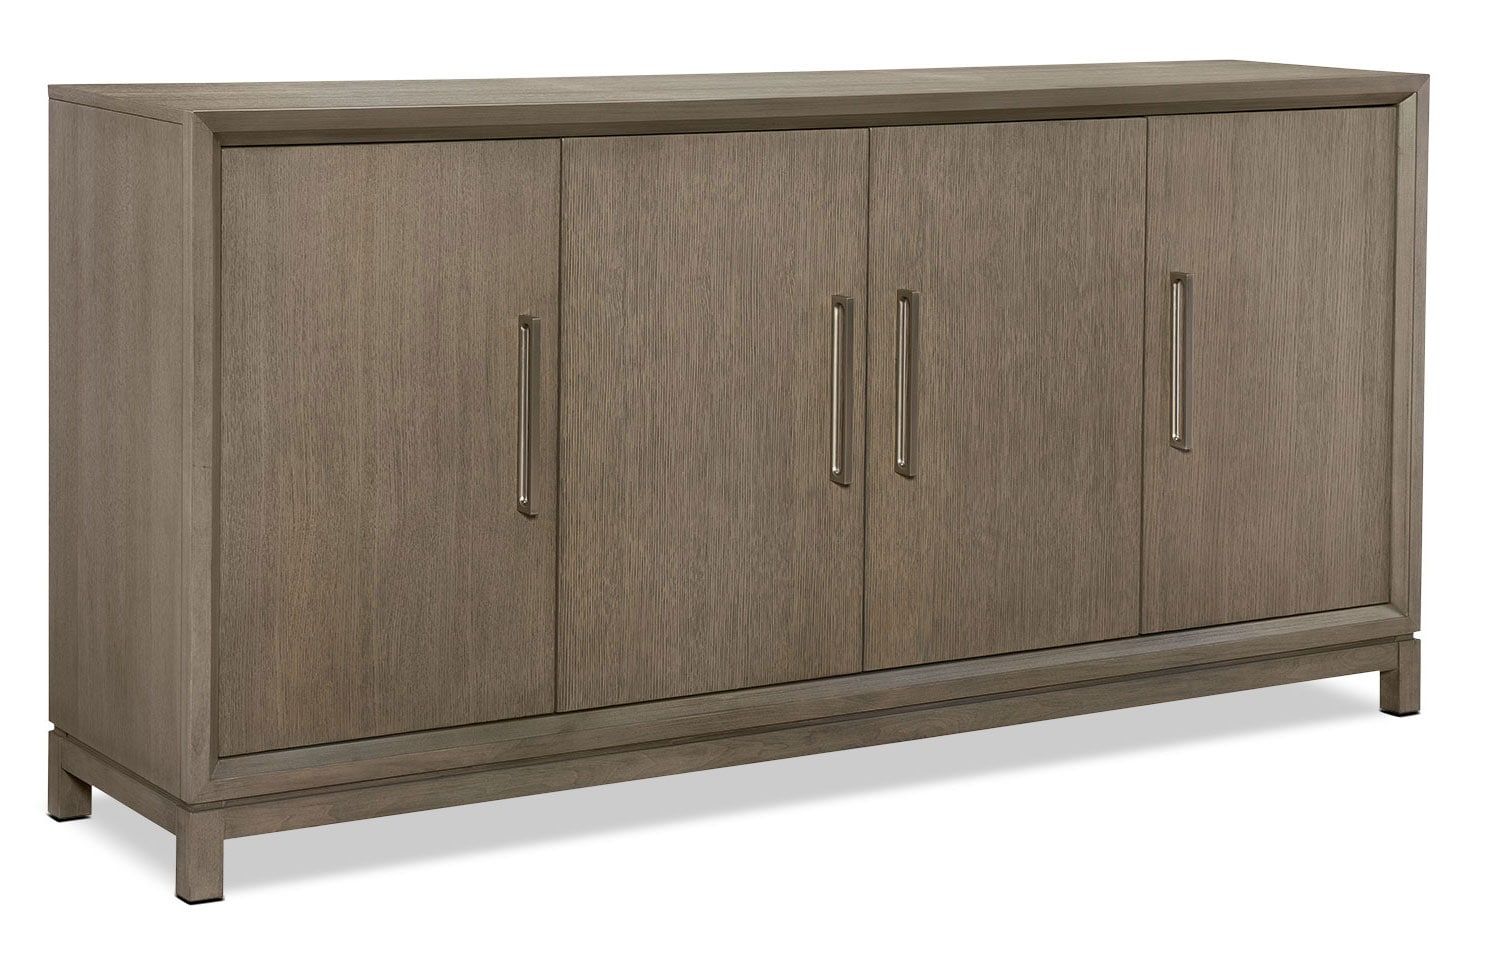 Rachael Ray Highline Credenza - Greige